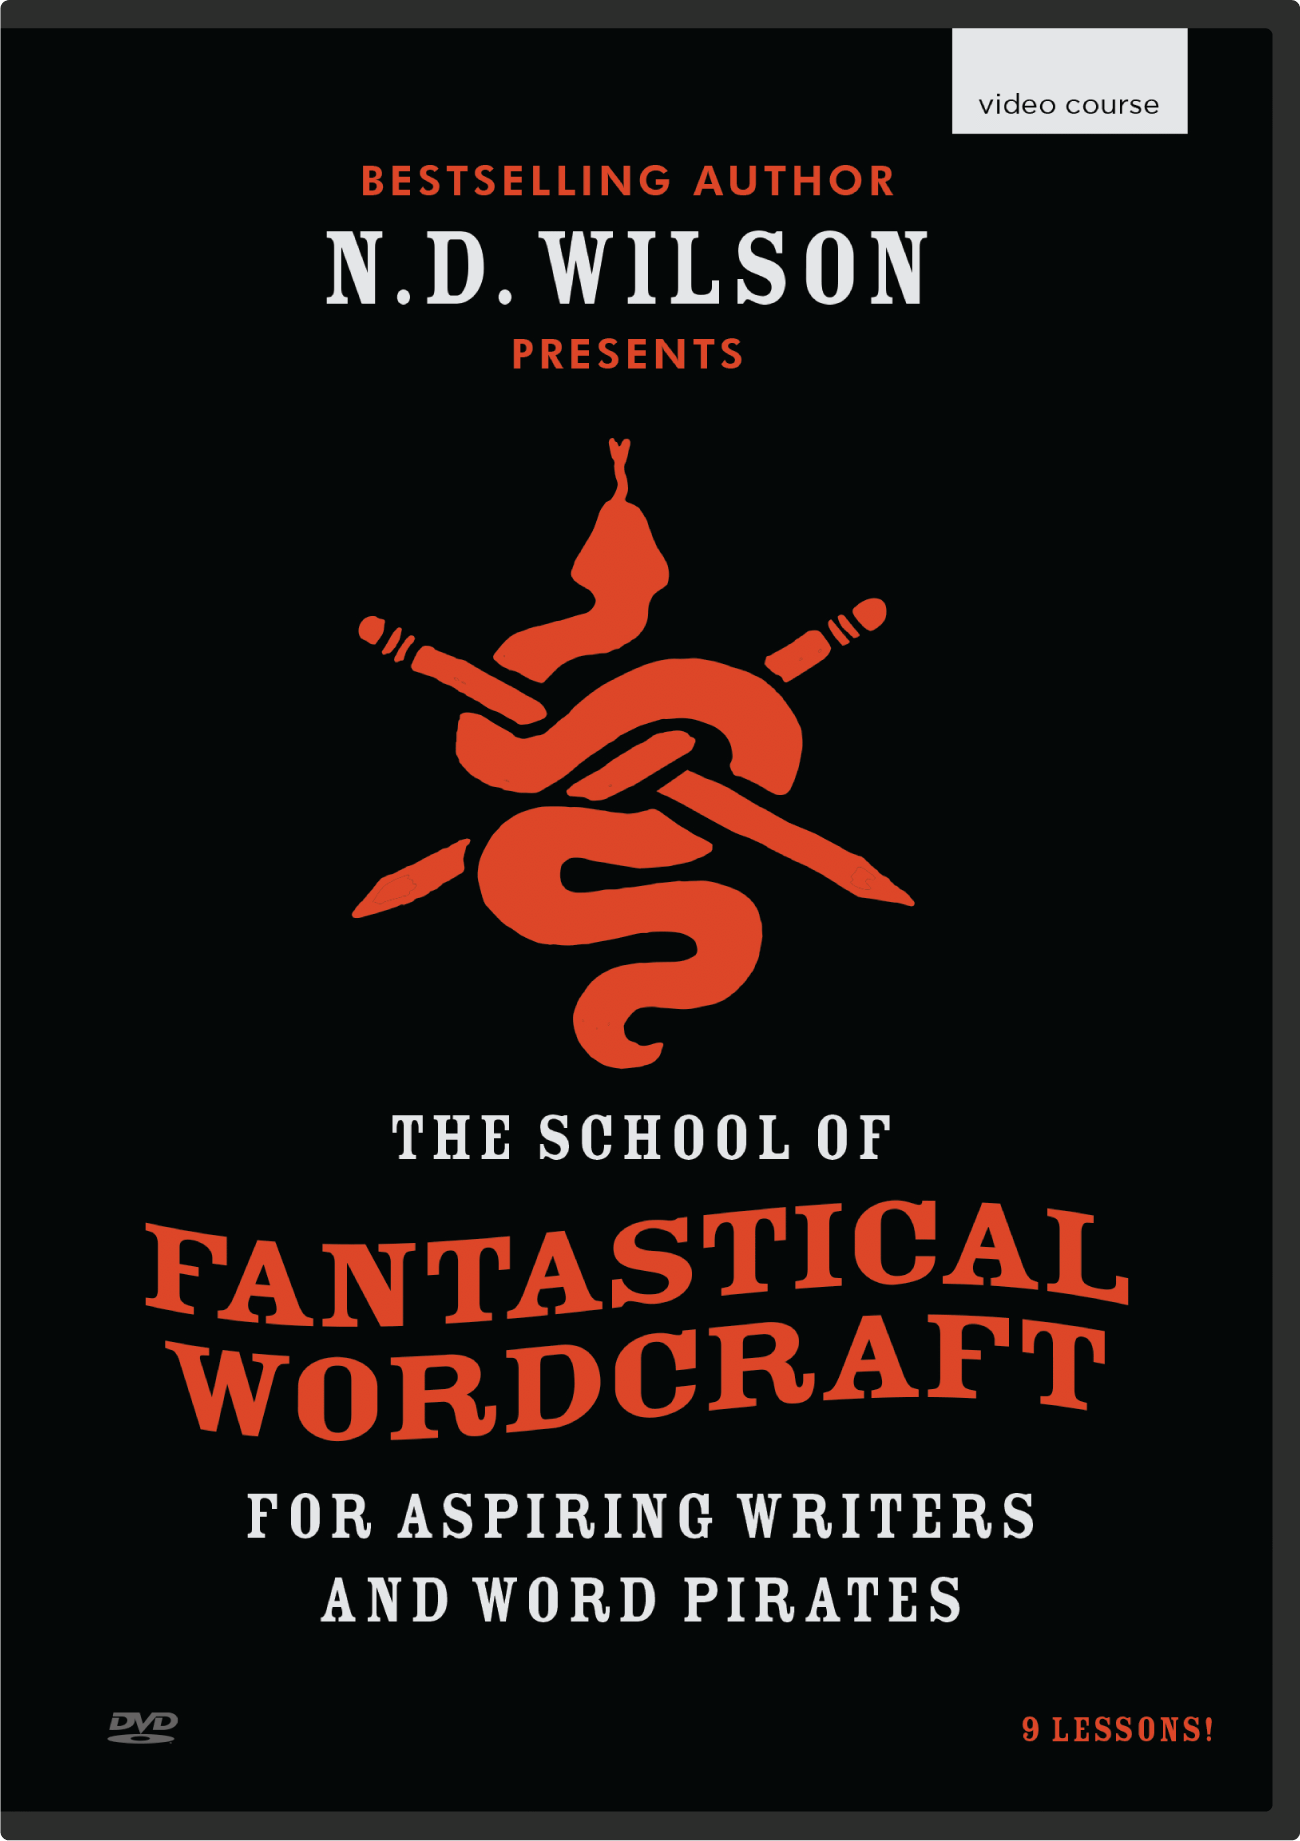 N.D. Wilson's School of Fantastical Wordcraft (DVD)